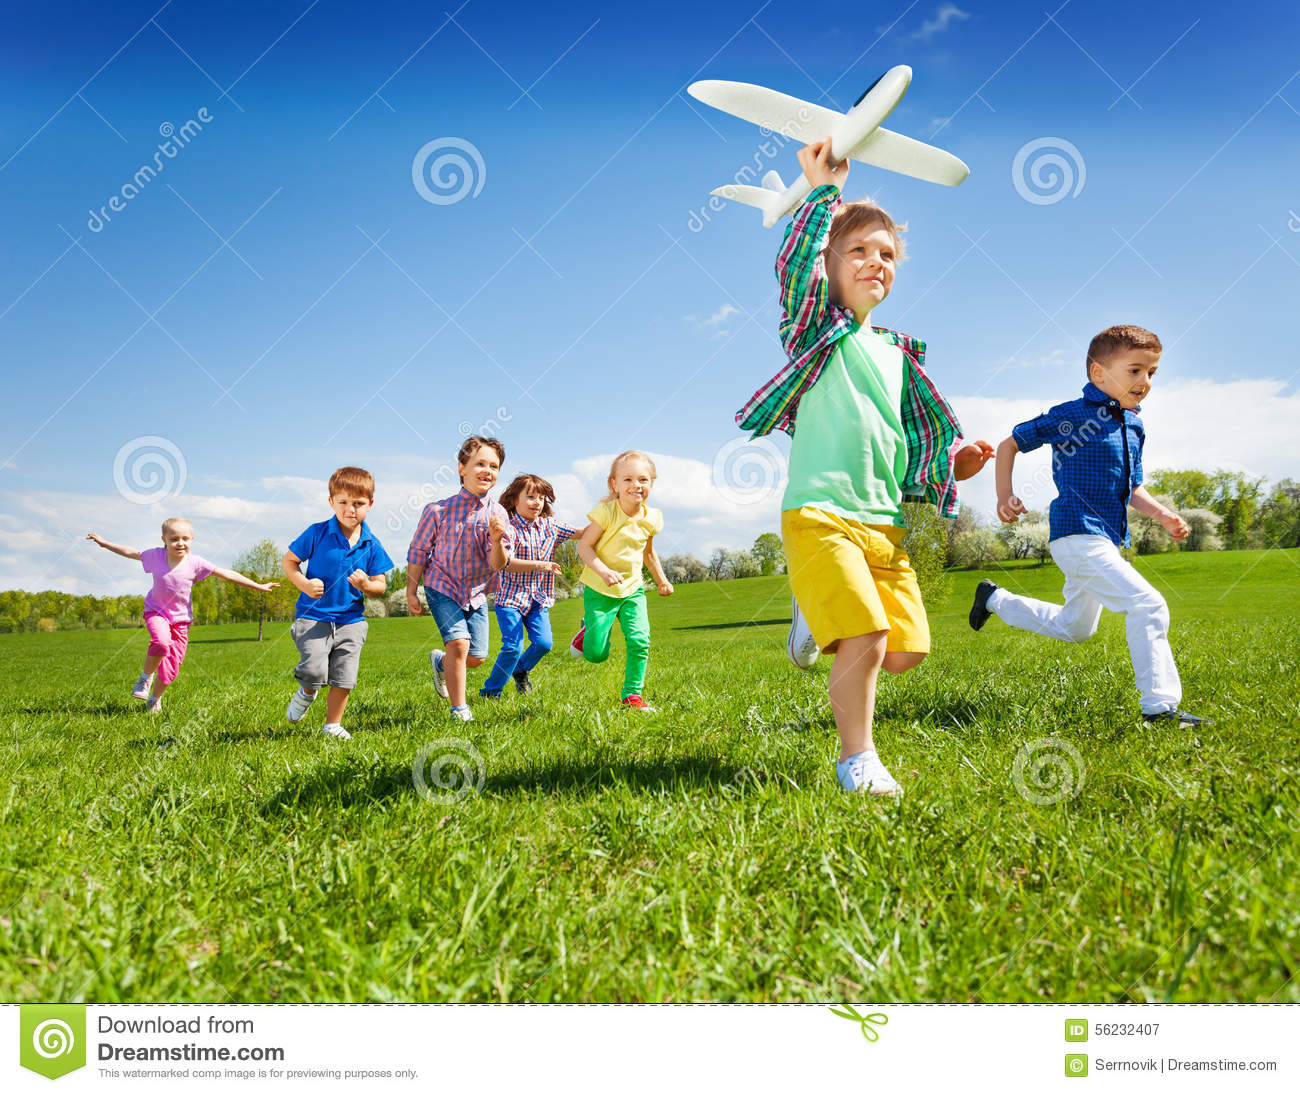 Toys For Active Boys : Active running kids with boy holding airplane toy stock